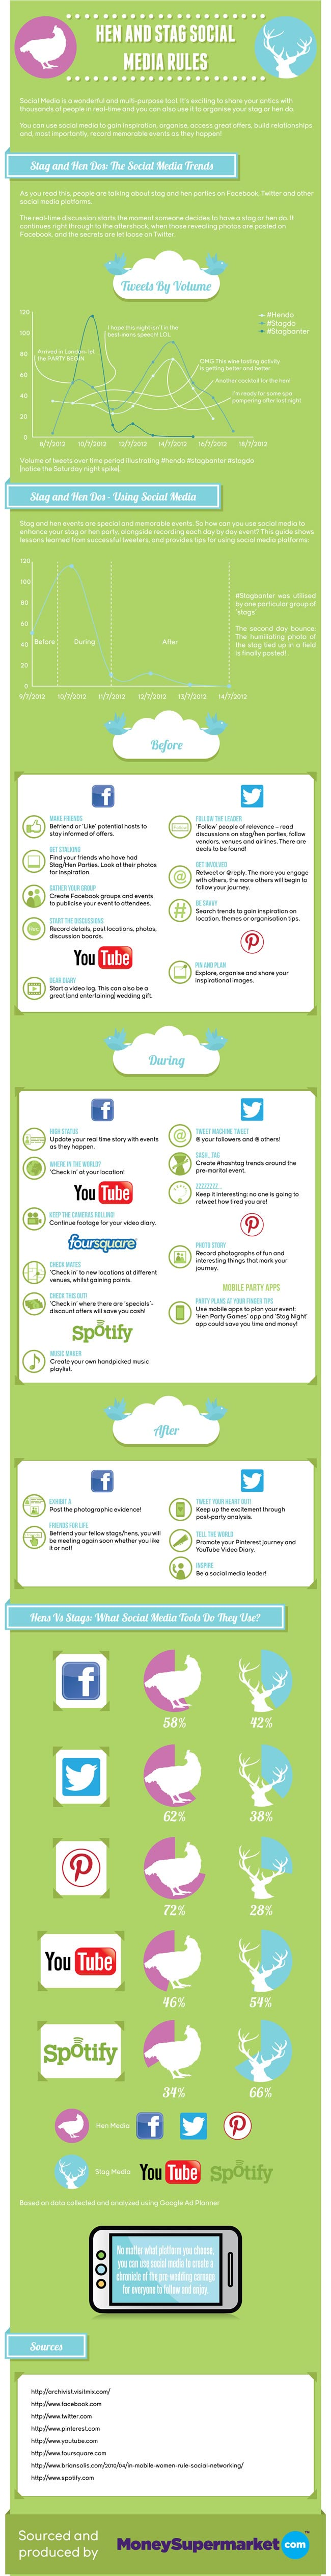 Hen-and-Stag-Social-Media-Rules-infographic